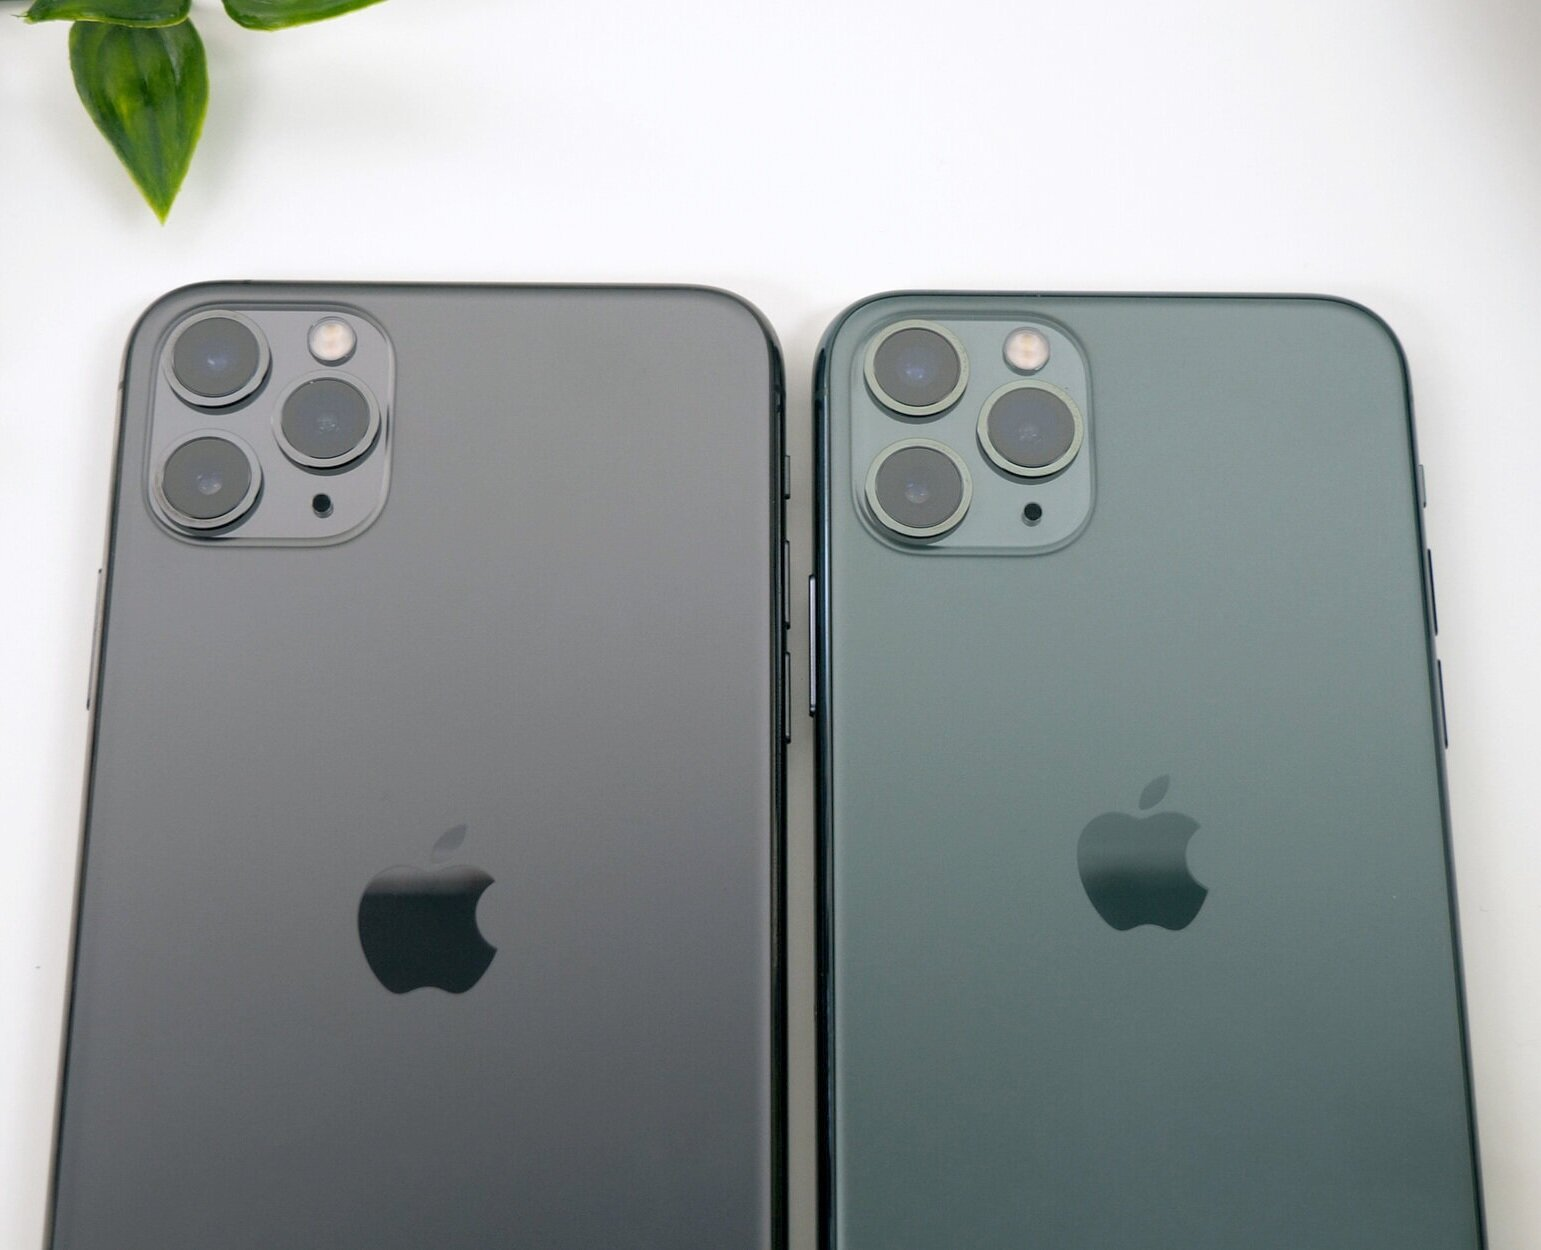 The Space Grey (Left) compared to the Midnight Green (Right) iPhone